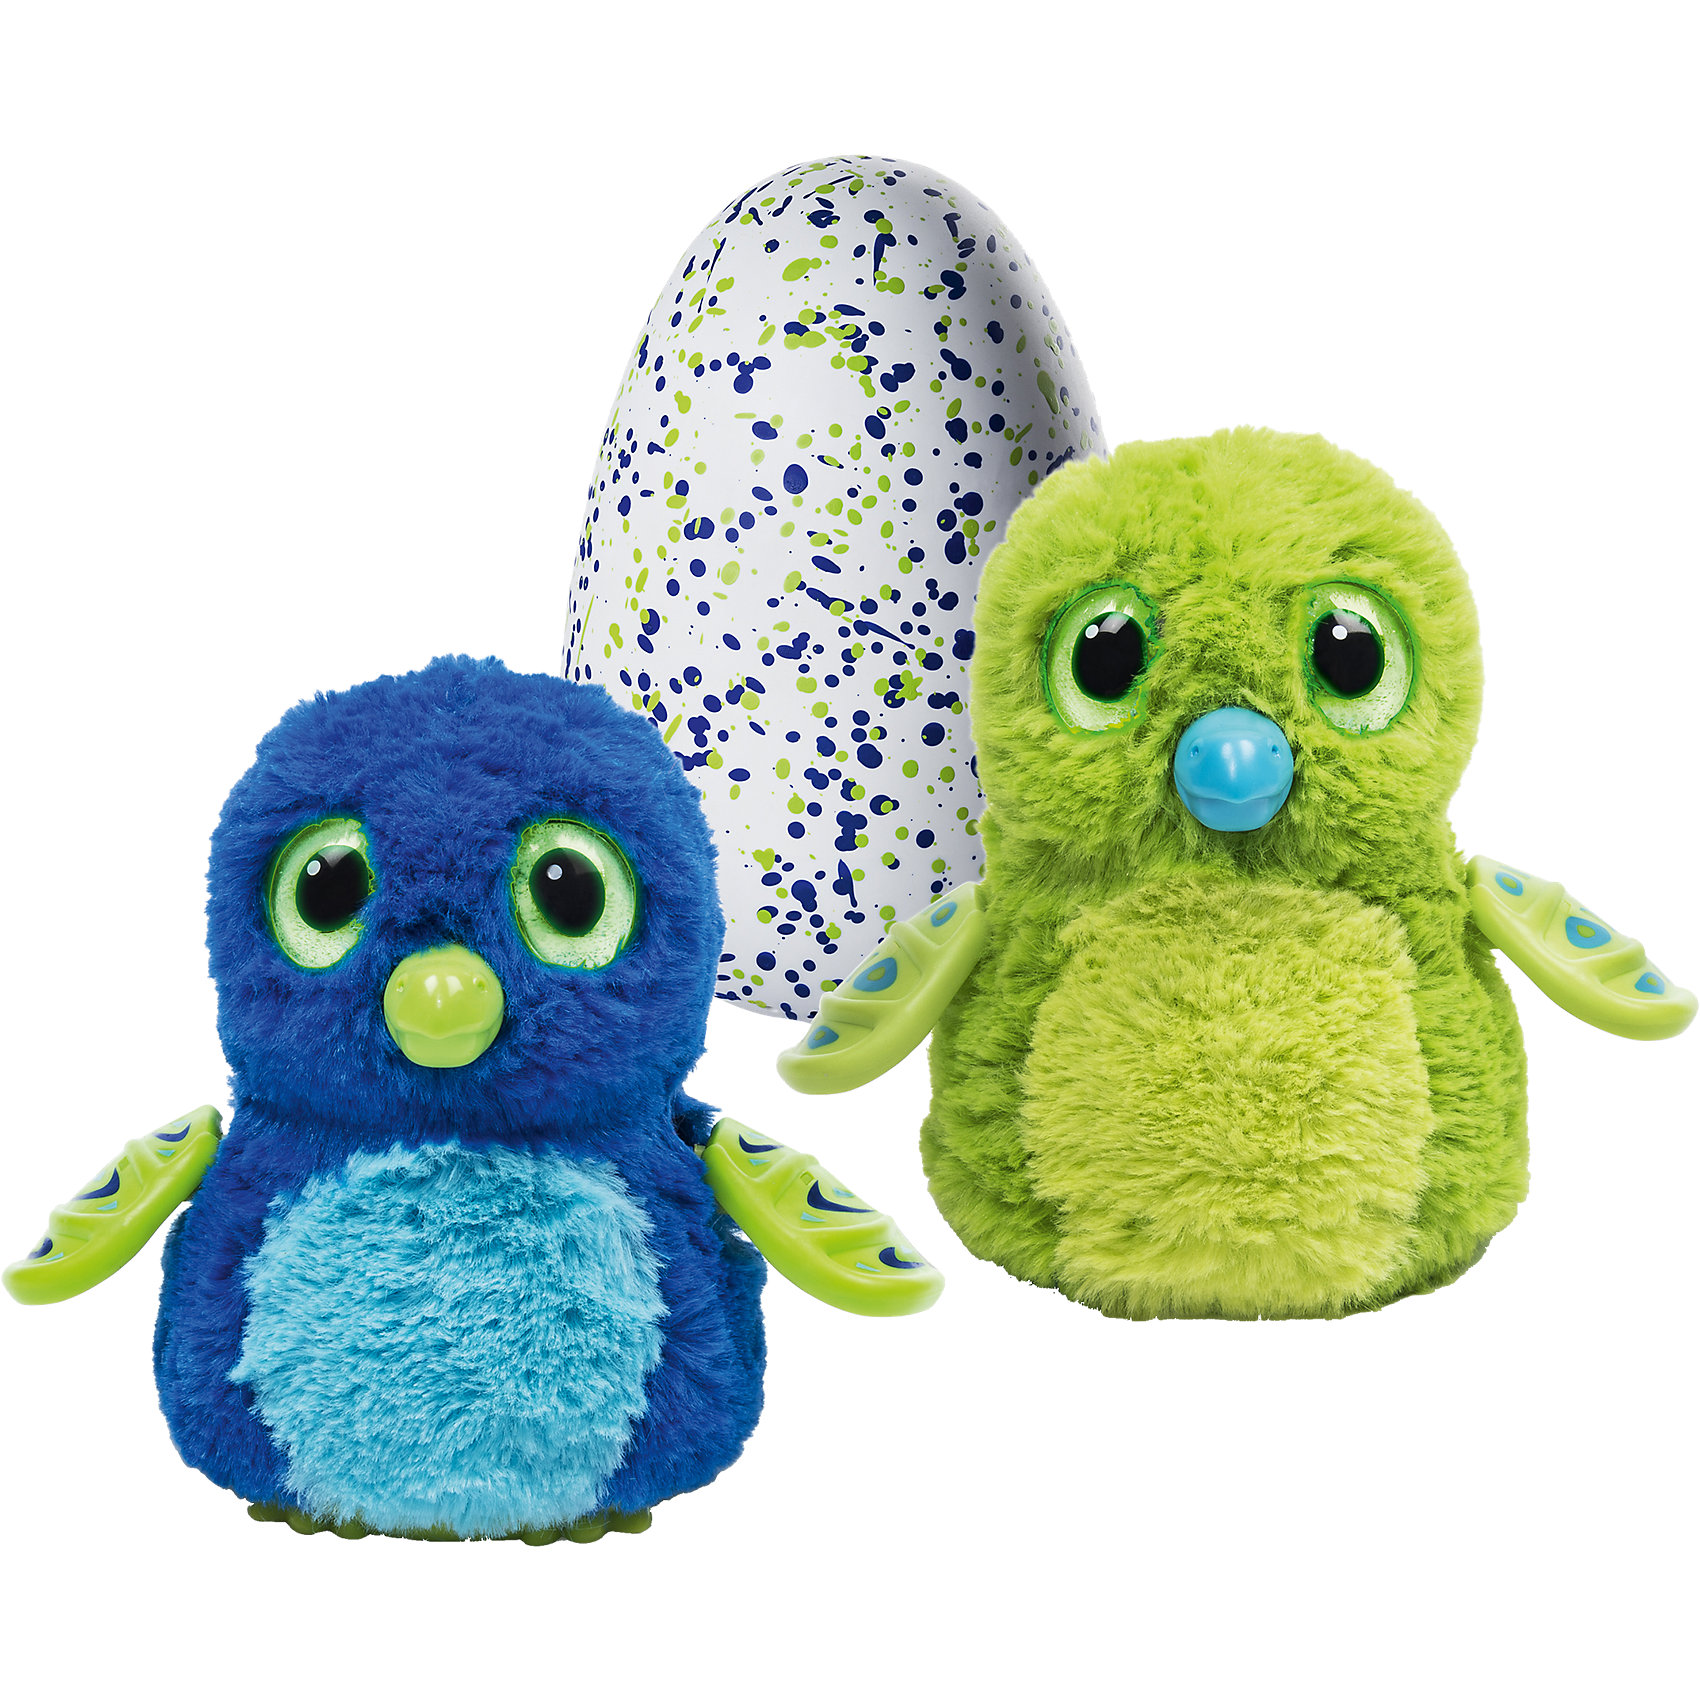 Дракончик Hatchimals, Spin Master, зеленый